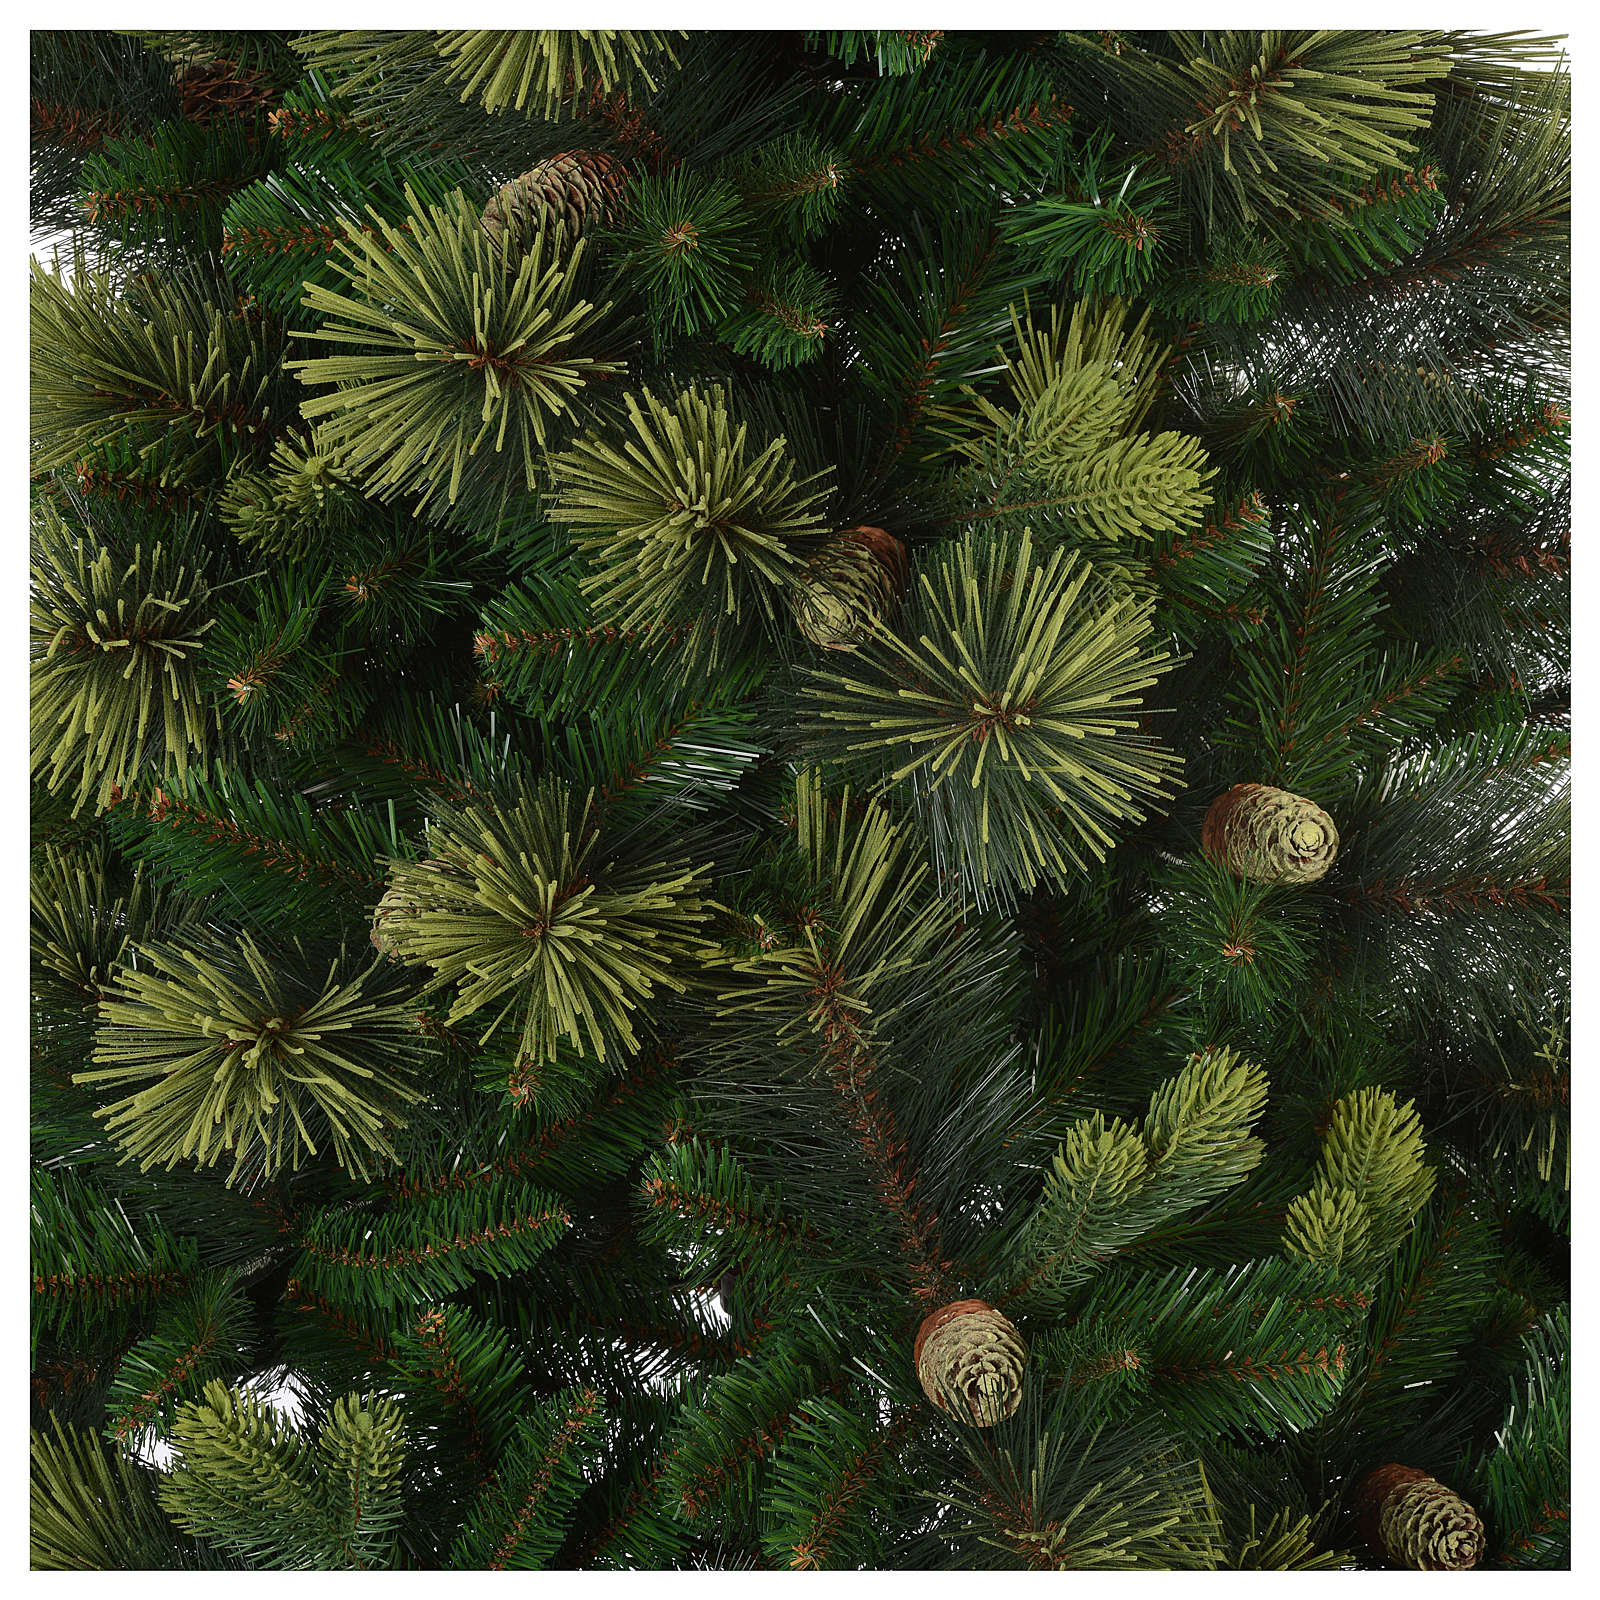 Christmas tree 225 cm, green with pine cones Carolina 3